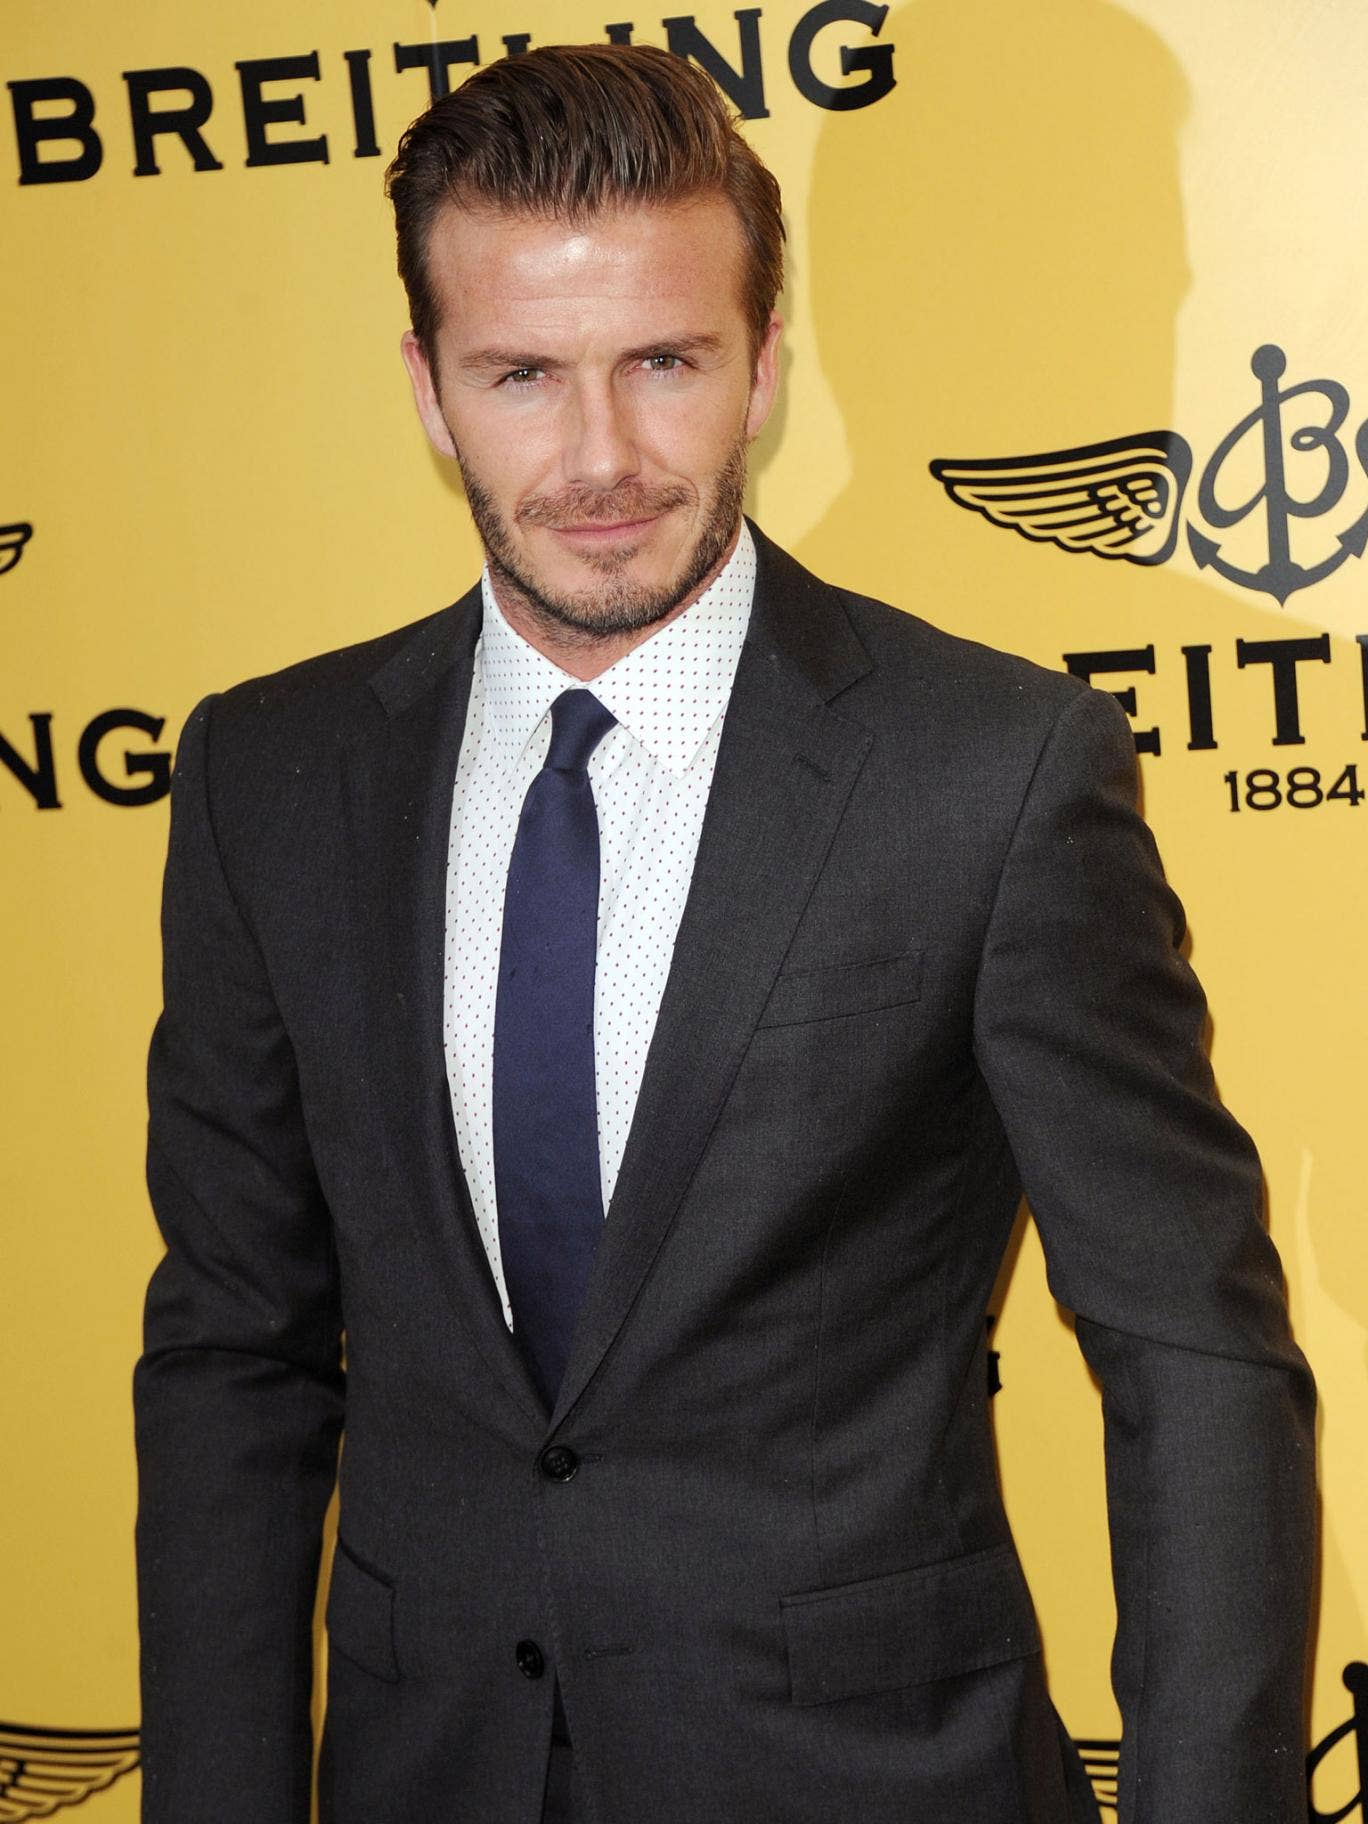 David Beckham is said to be considering a film role in The Secret Service